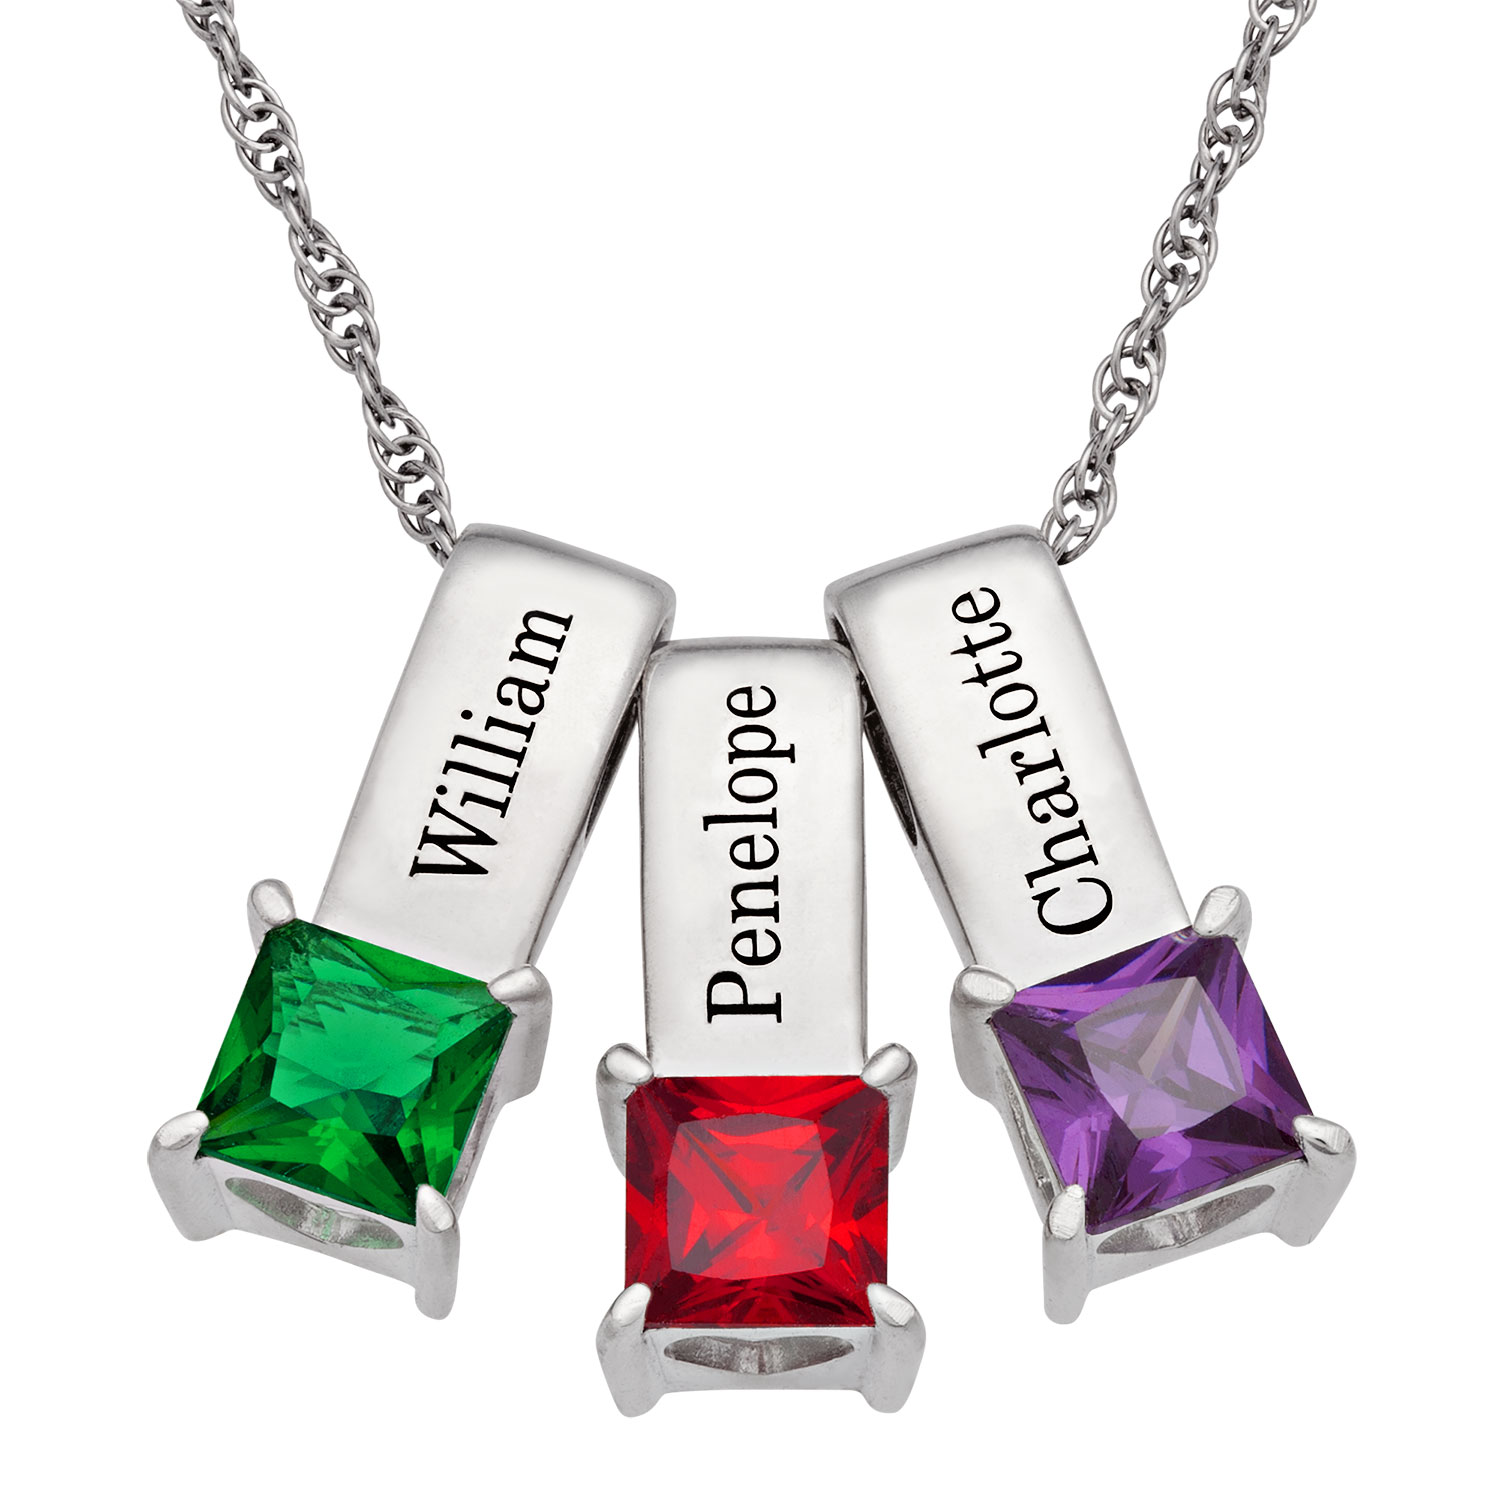 Sterling Silver Personalized Name And Birthstone 3 Piece